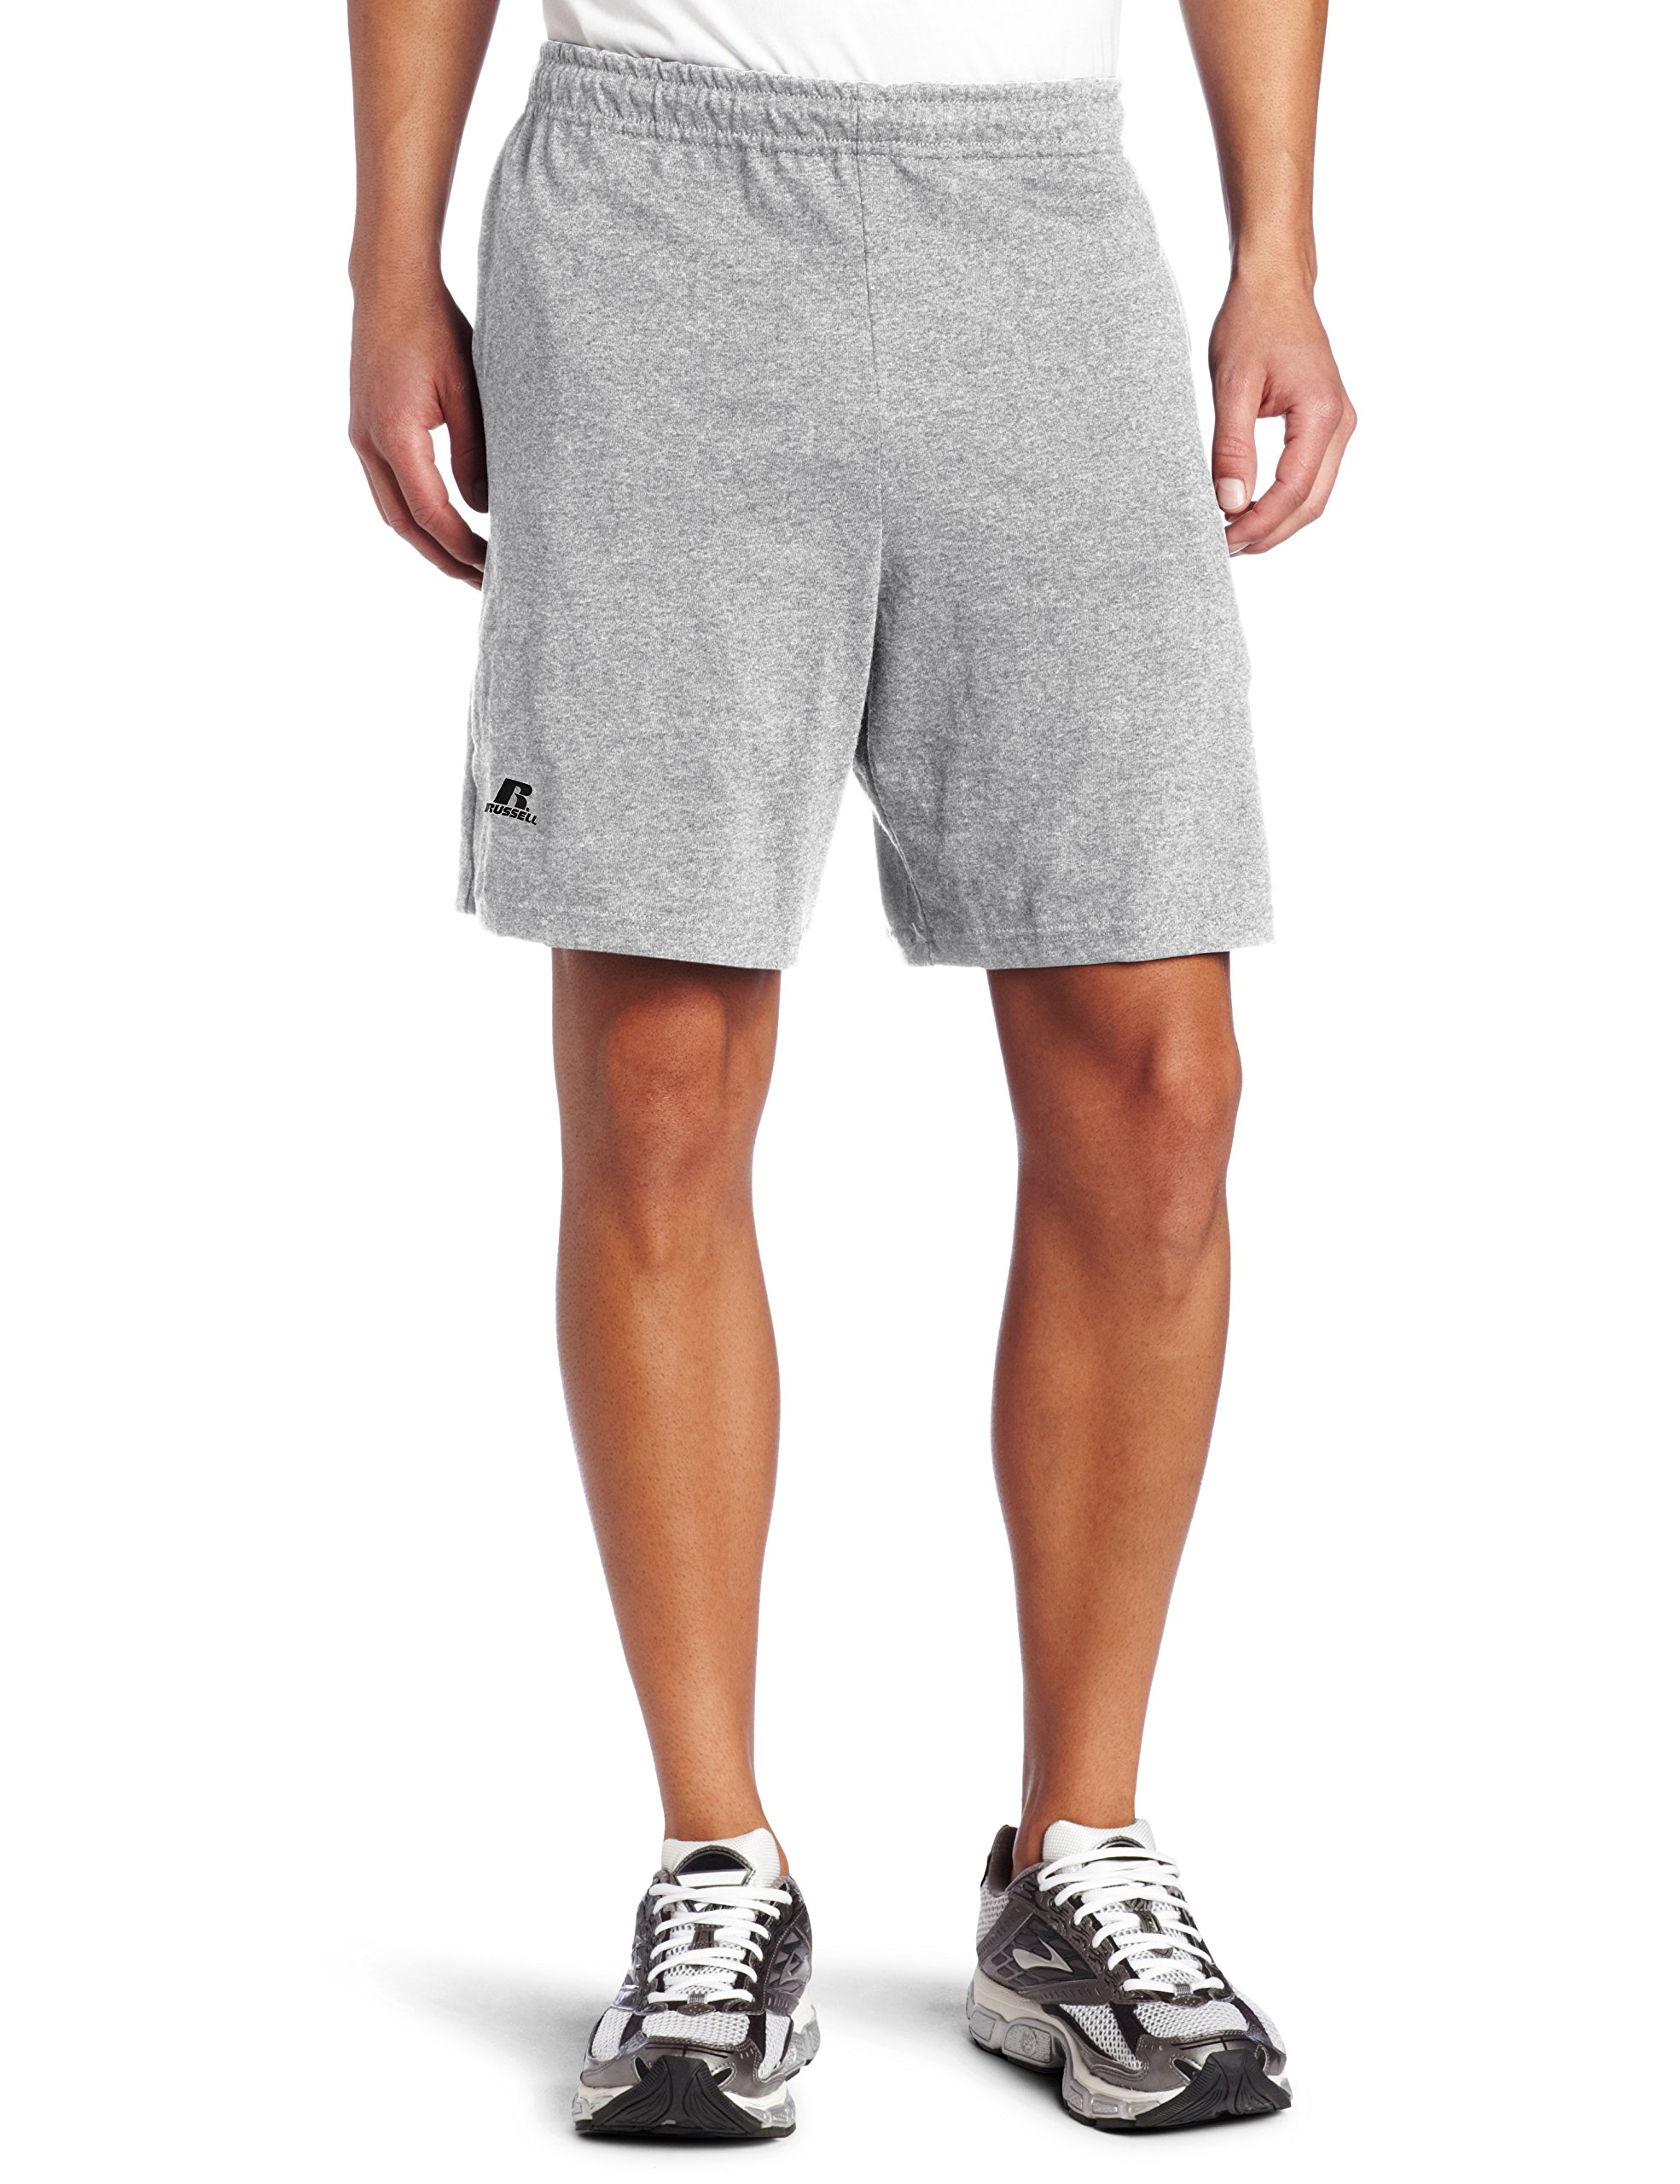 Russell Athletic Men's Cotton Baseline Short with Pockets, Oxford, XXXX-Large by Russell Athletic